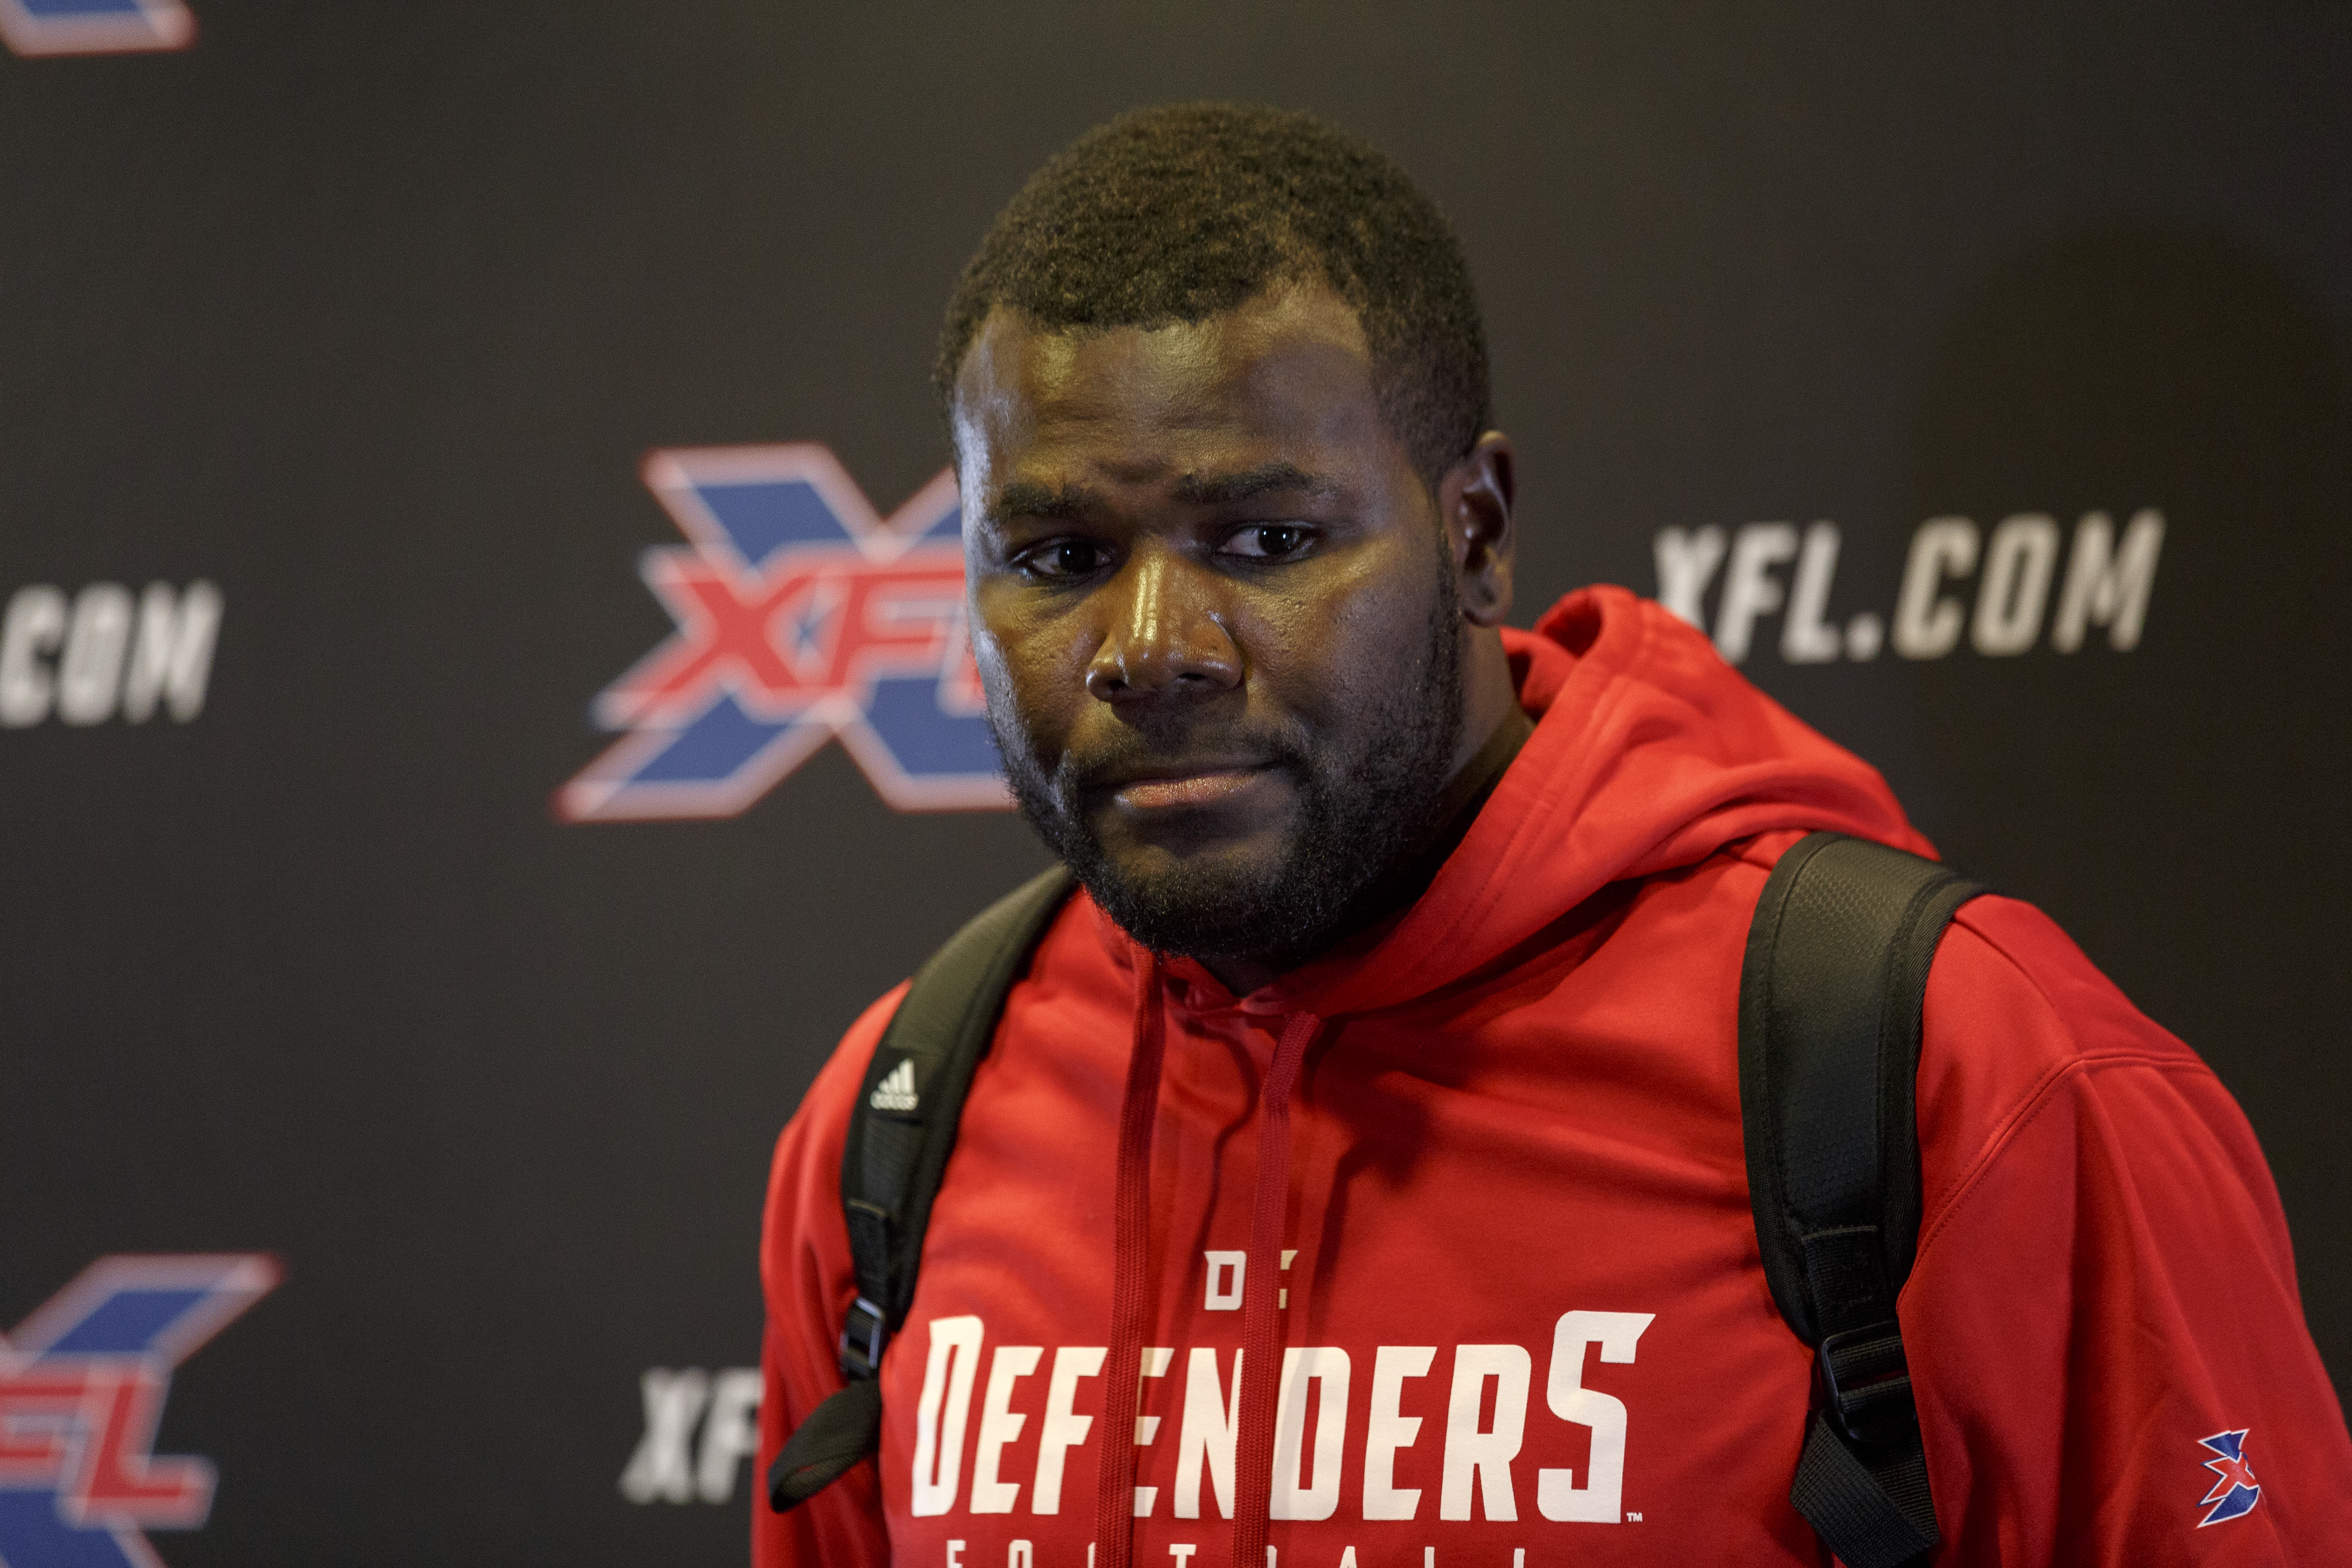 Quarterback Cardale Jones #12 of the DC Defenders answers questions from the media after the XFL Football game against the Tampa Bay Vipers at Raymond James Stadium on March 1, 2020 in Tampa, Florida. The Vipers defeated the Defenders 25 to 0.